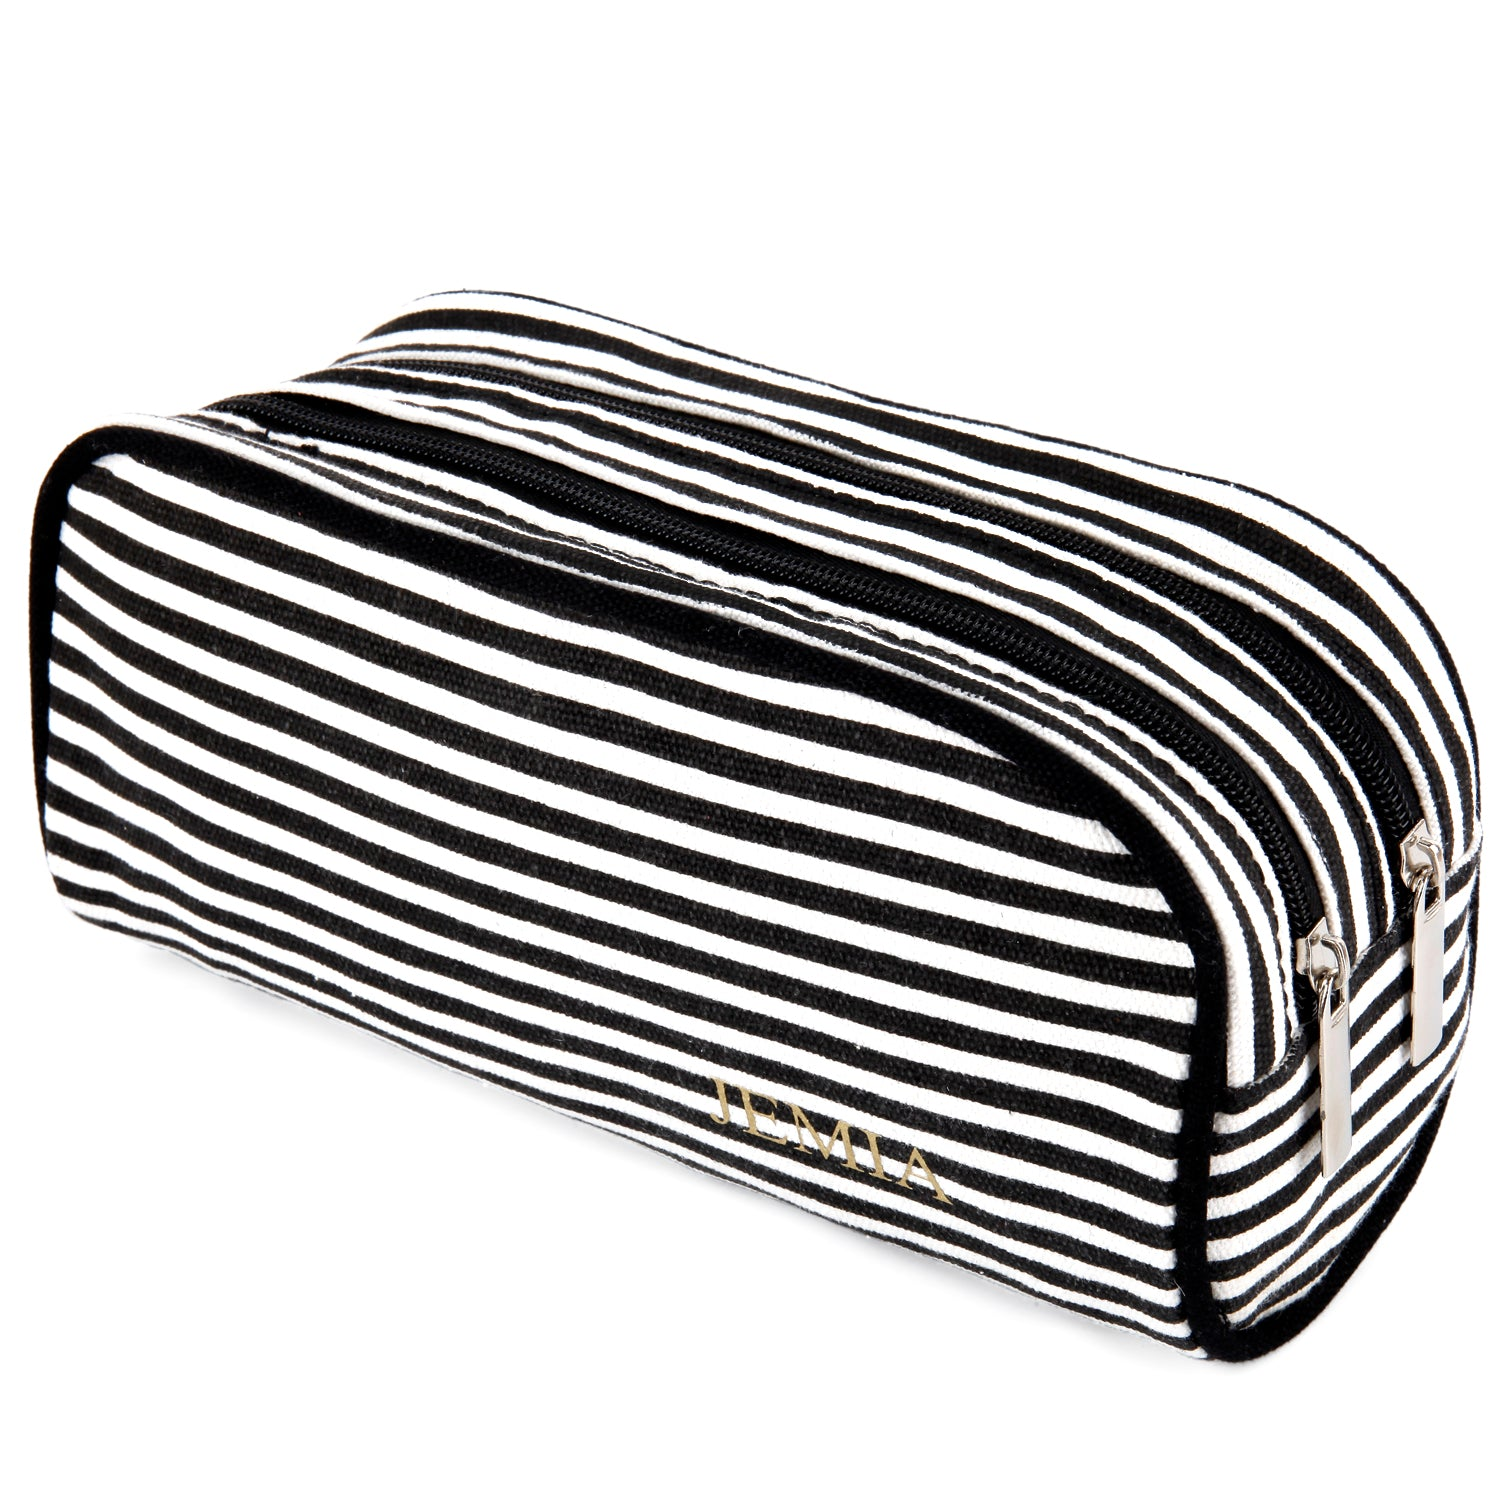 Dual Compartments Pencil Case with Mesh Pockets (Black White Stripes, Canvas) - JEMIA